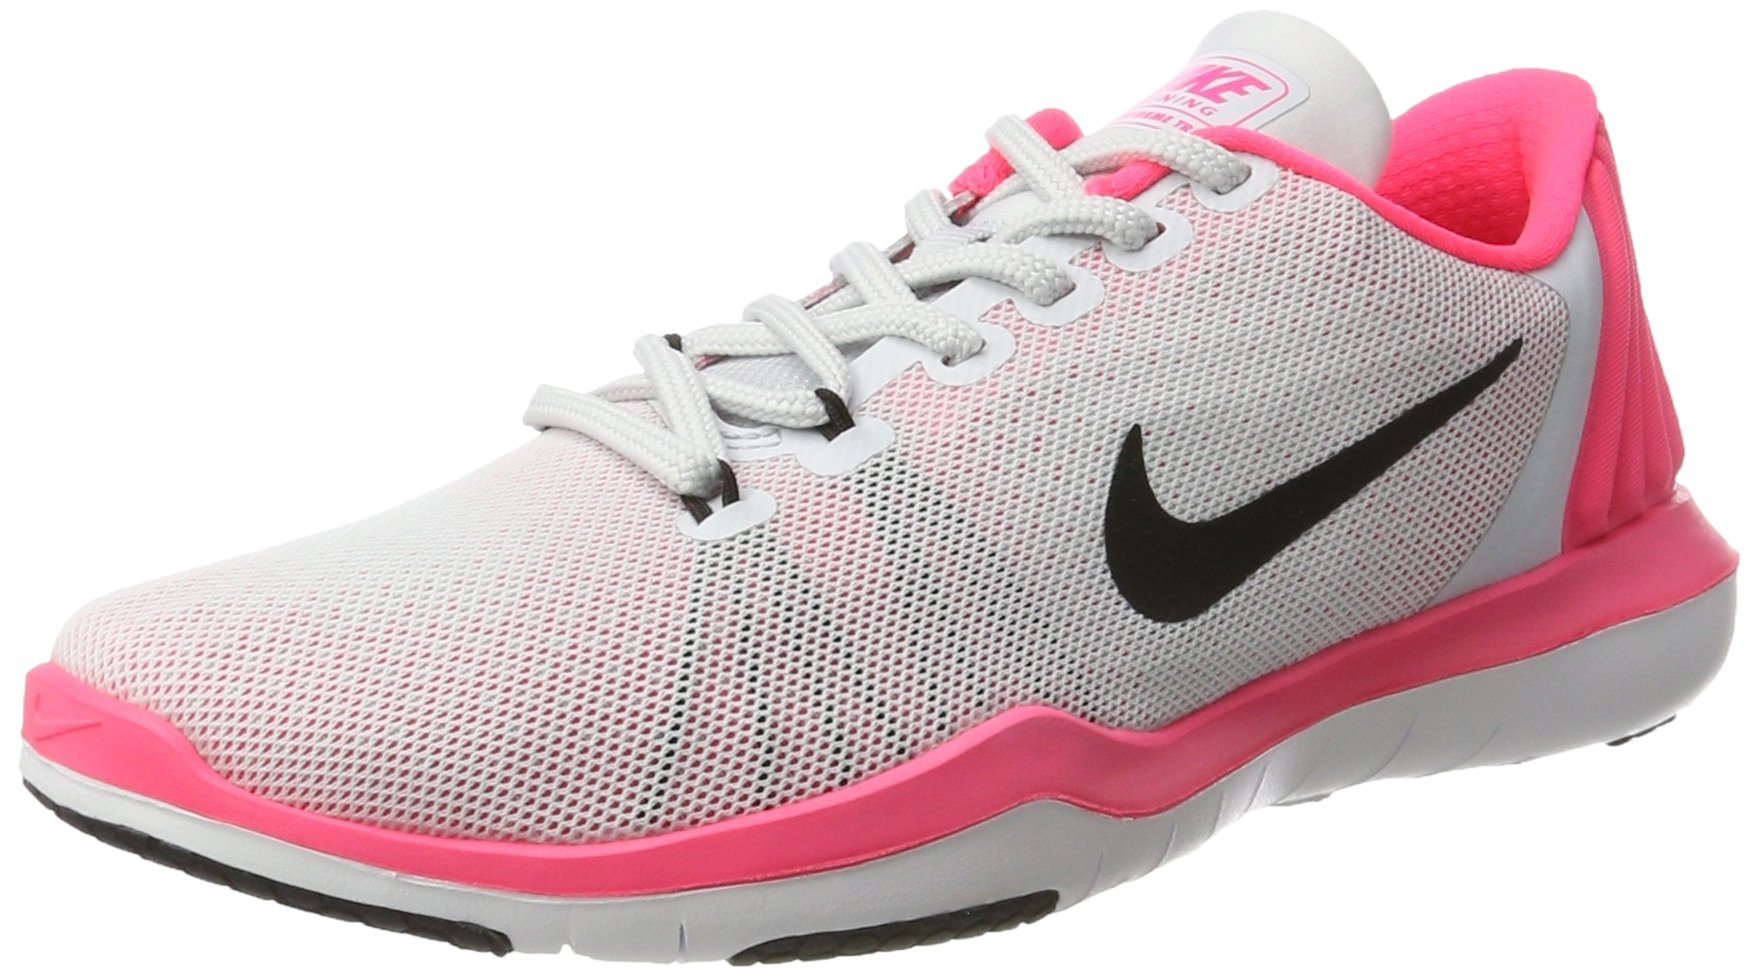 Nike Women's Flex Supreme TR 5 Cross Trainer, Pure Platinum/Black/Racer Pink/Wolf Grey, 6.5 B US